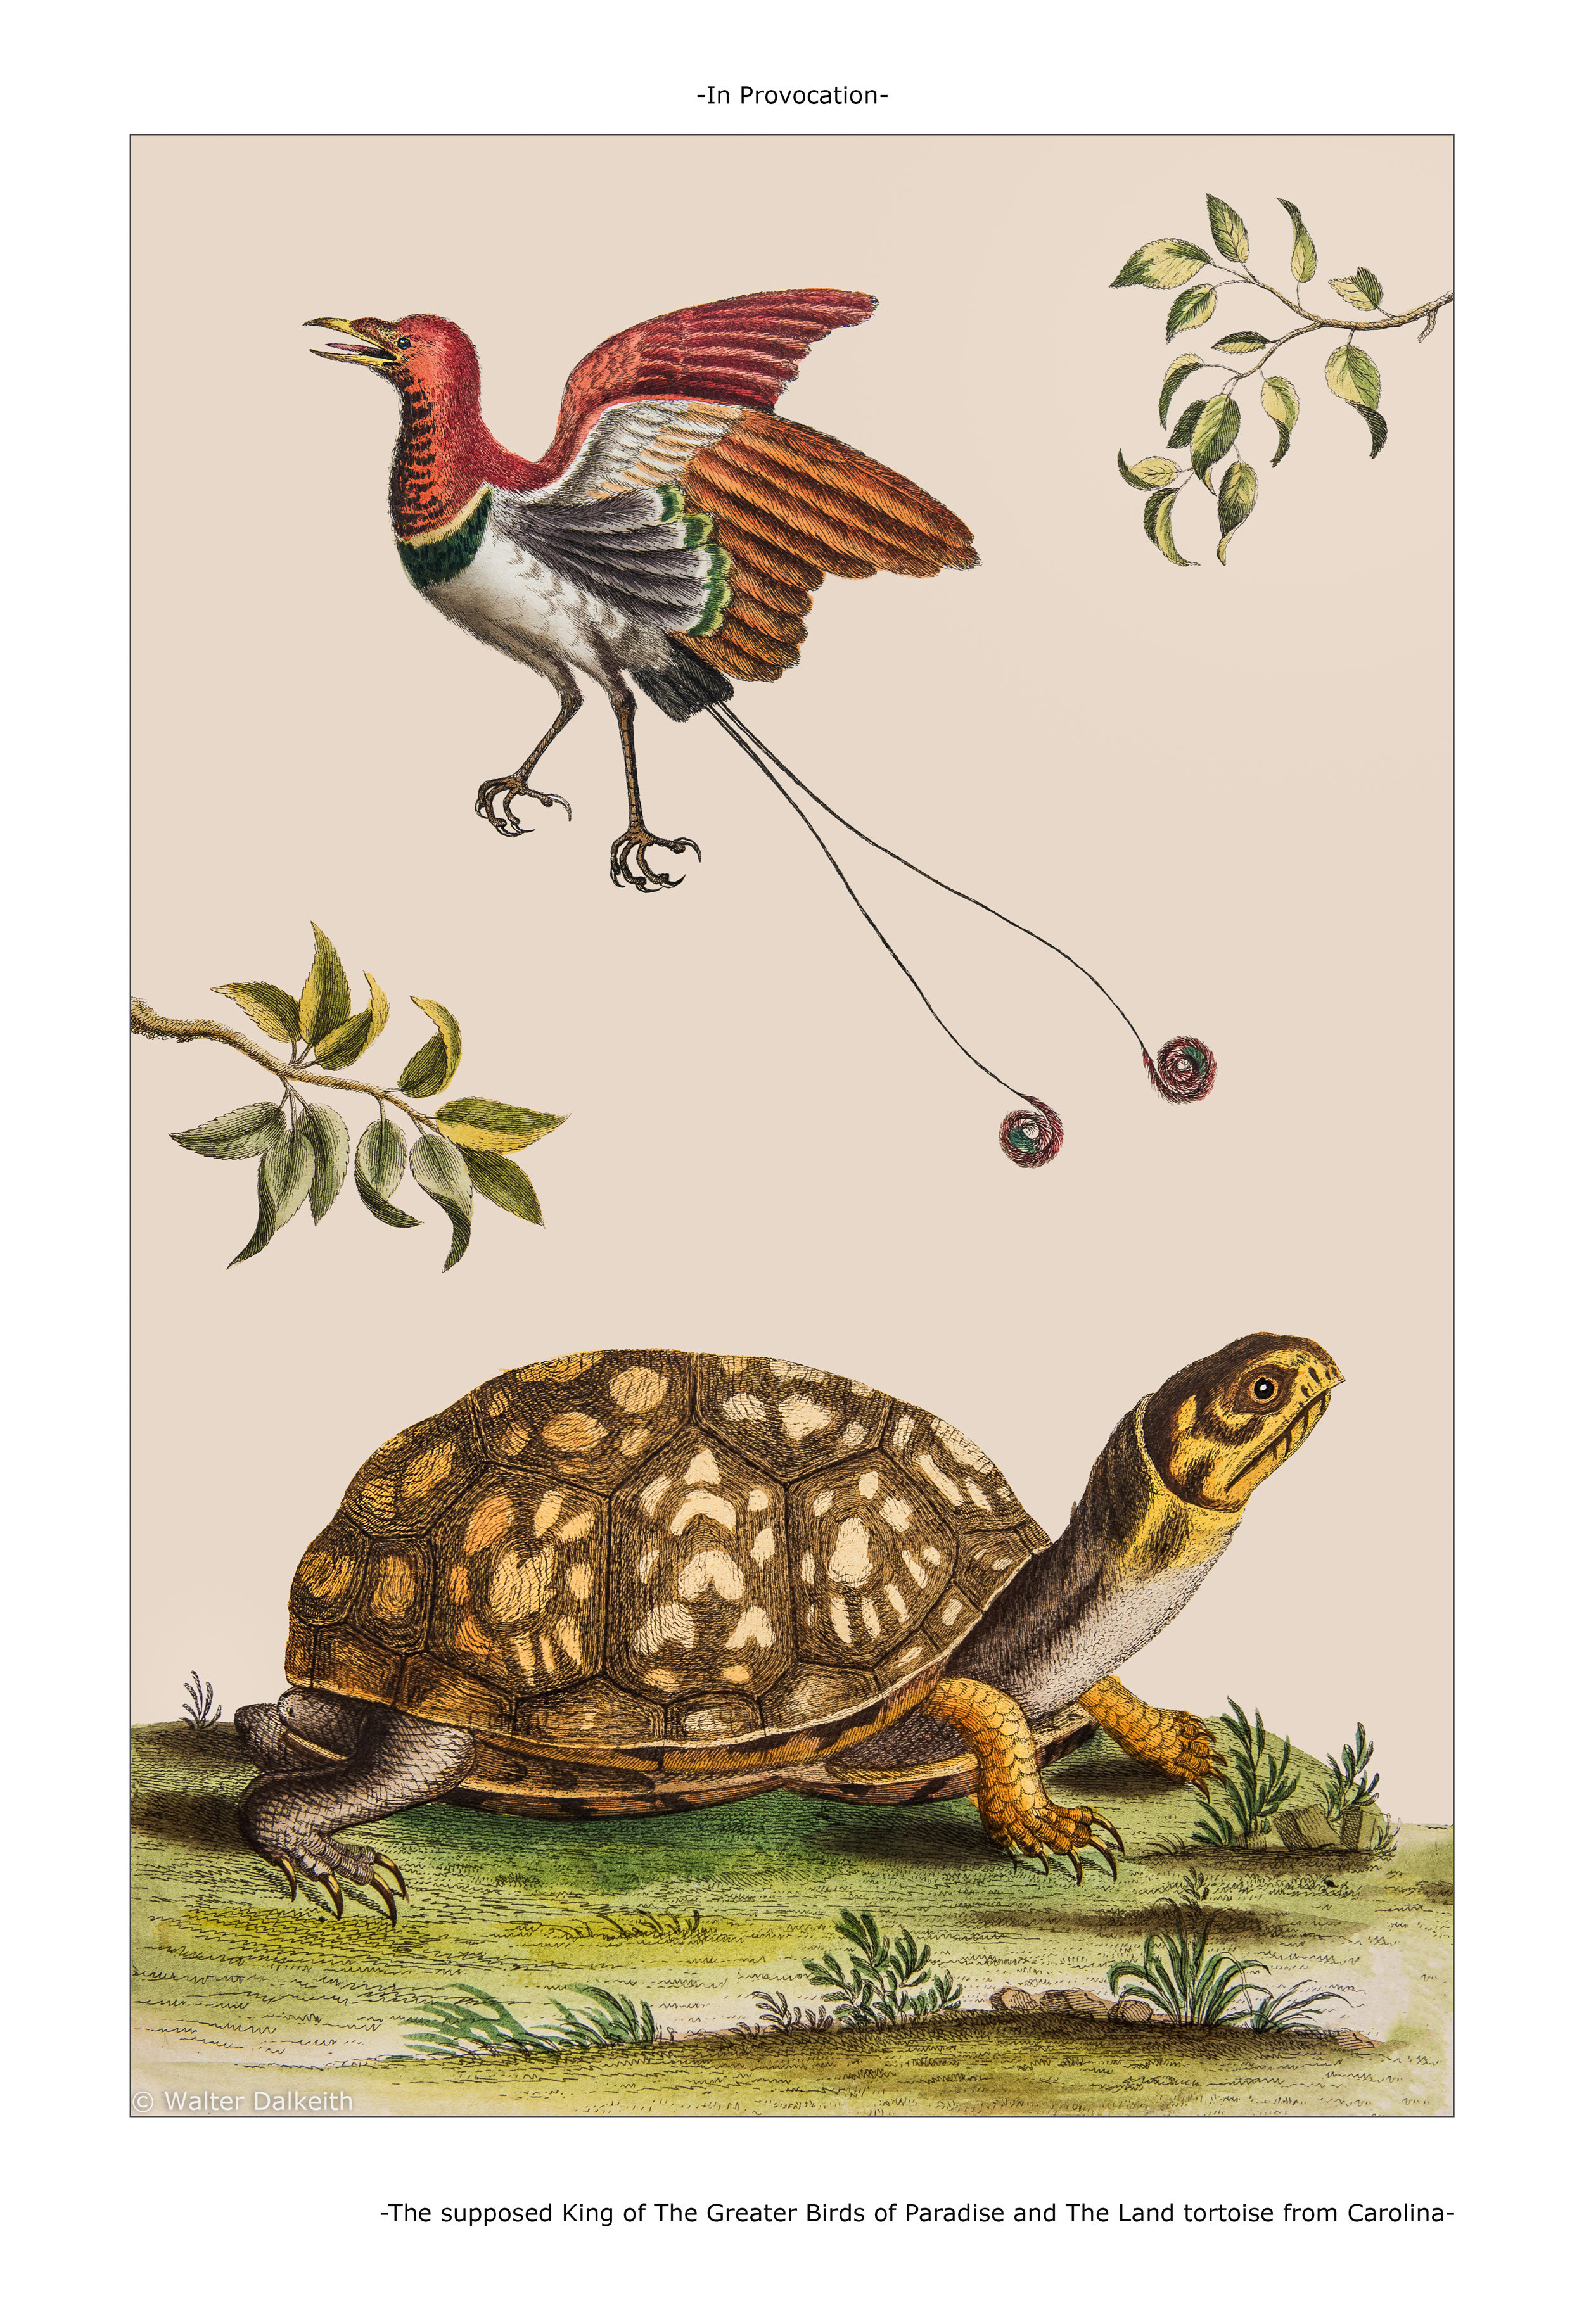 The Supposed King of the Greater Birds of Paradise and The Land Tortoise from Carolina Main title.jpg